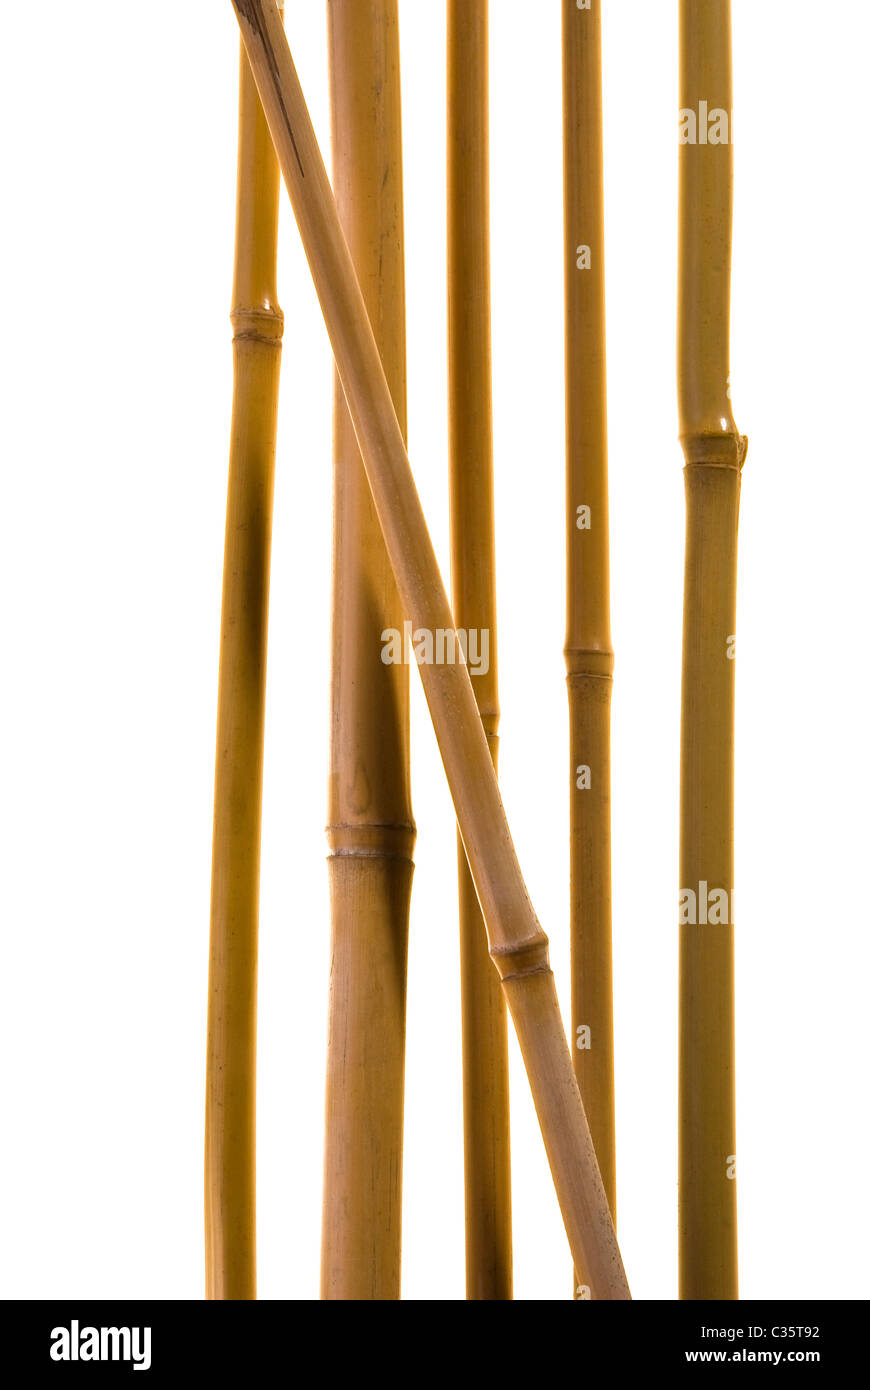 Bamboo canes - Stock Image